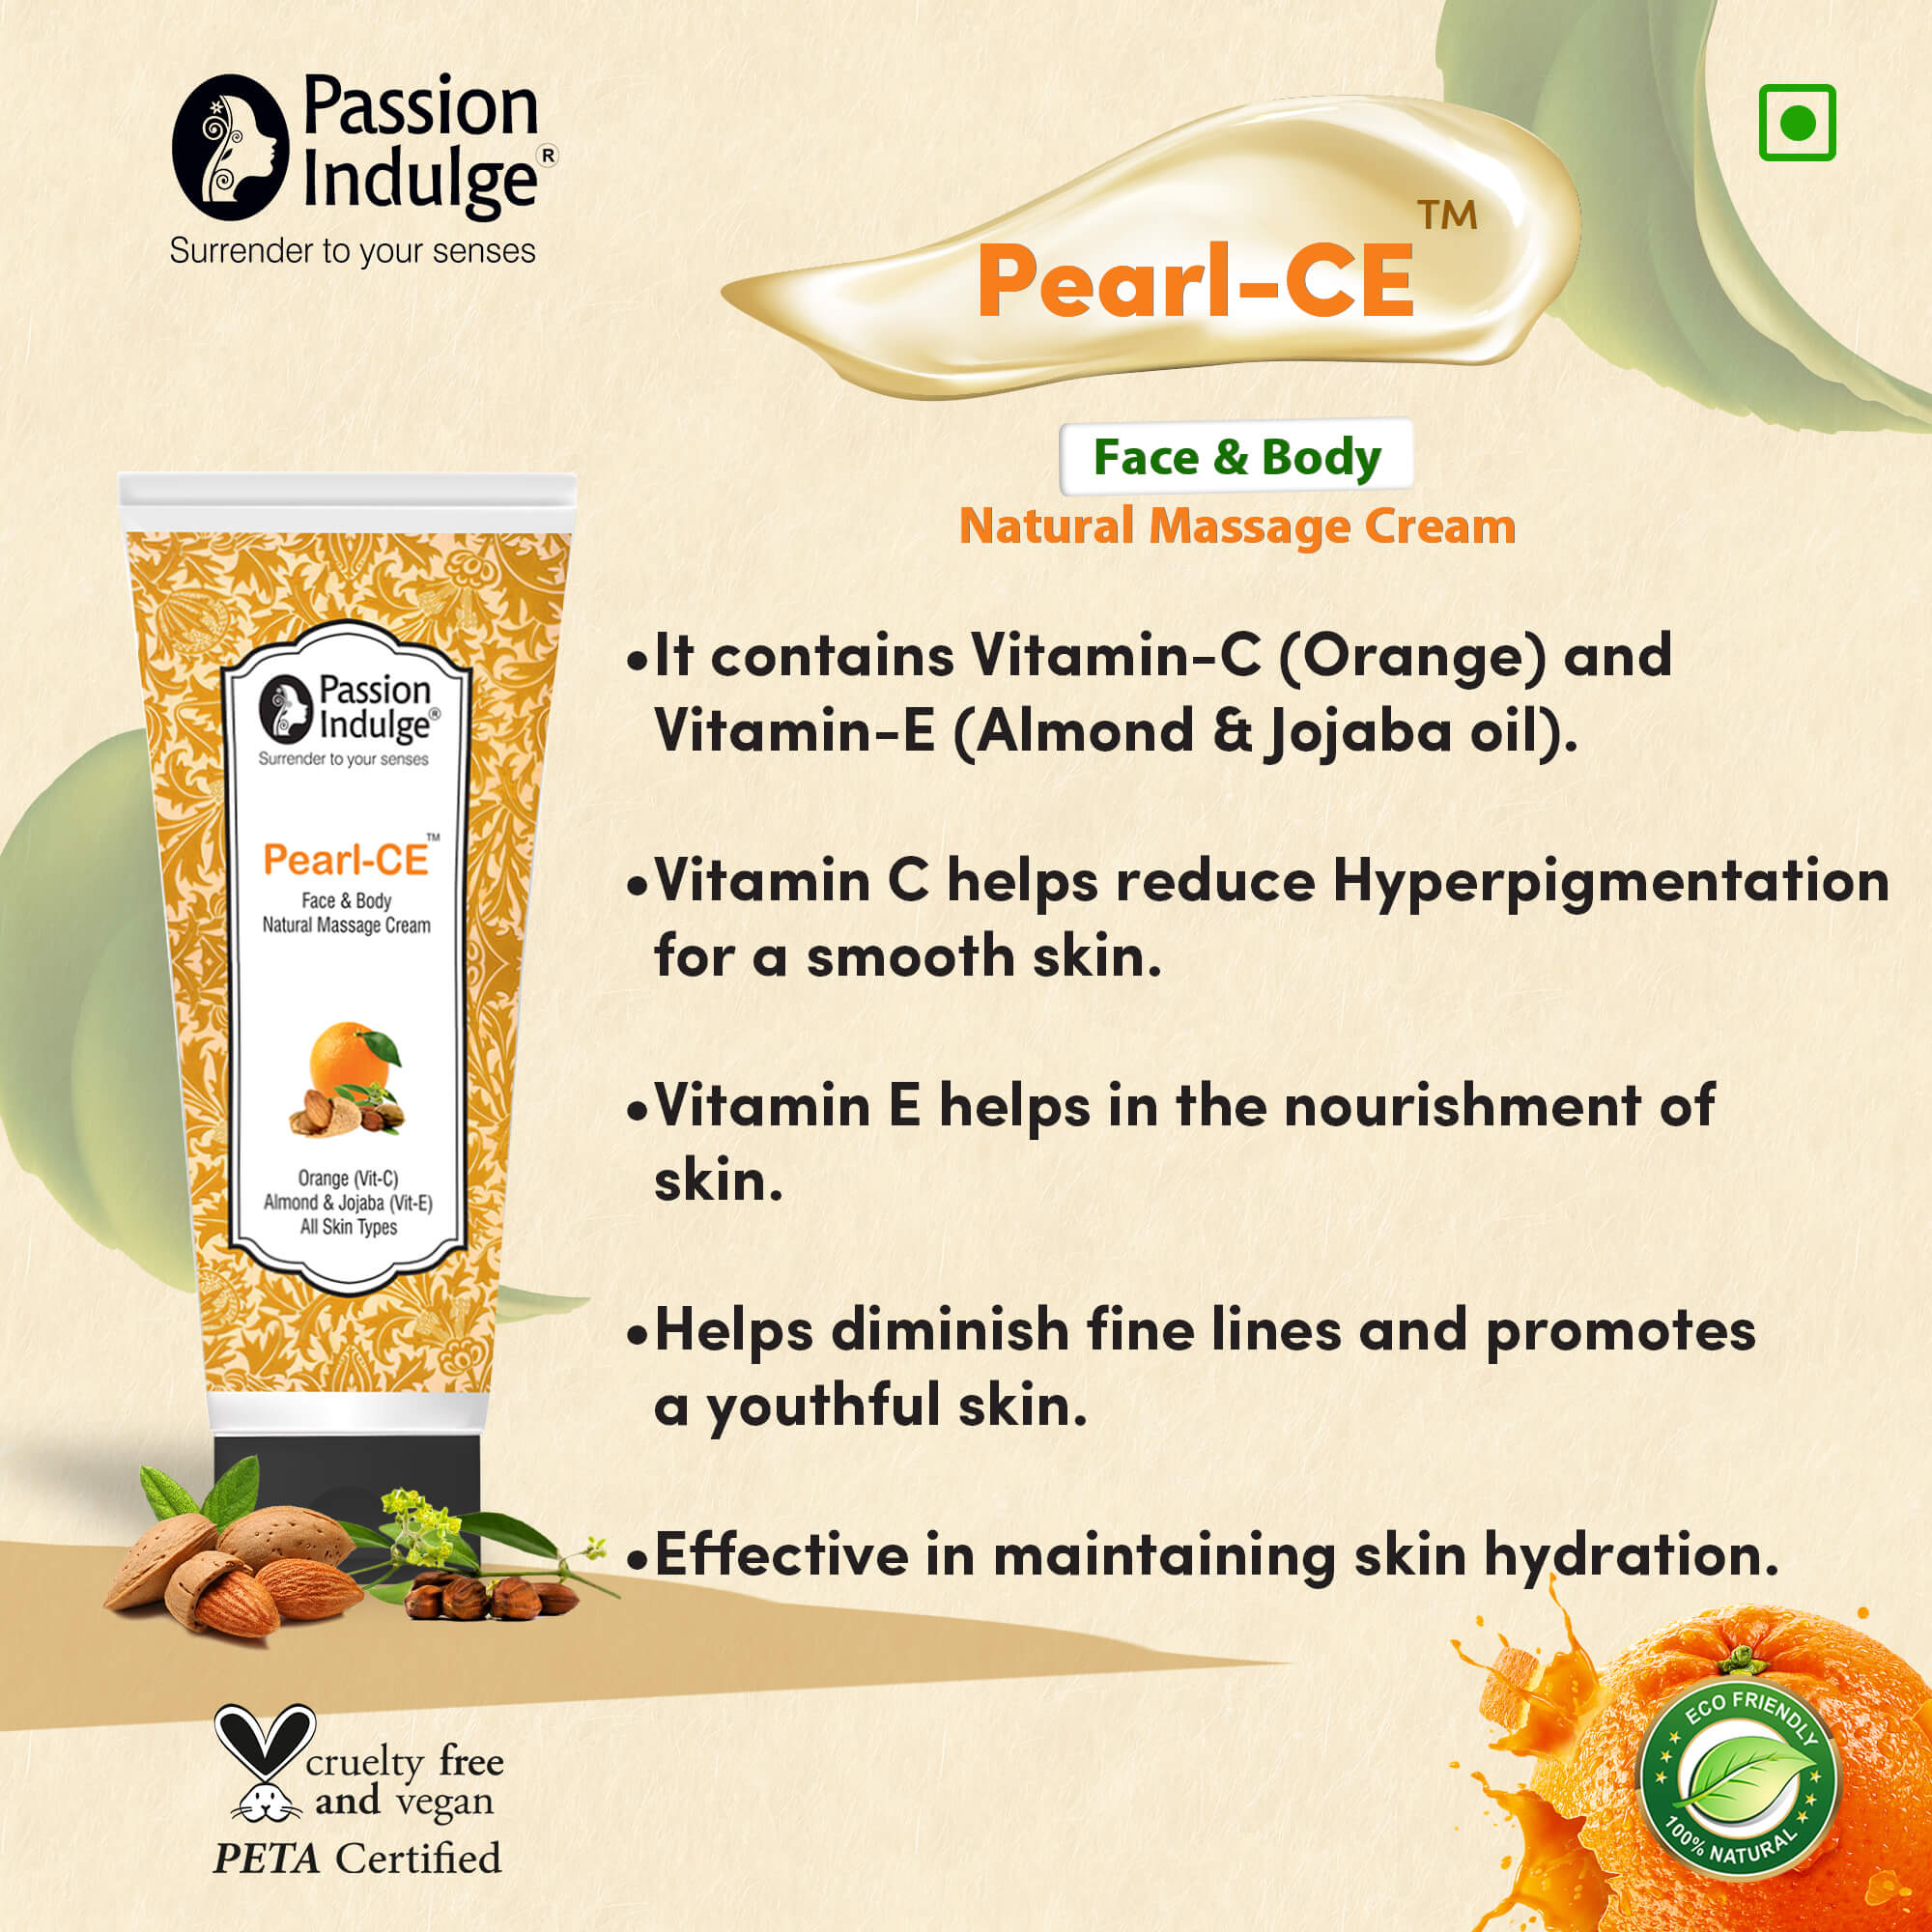 Passion Indulge Pearl-Ce Face and BodyVitamin C and Vitamin E Glow Boosting Orange Shea Butter Cream Oil Free, Quick Absorbing - for All Skin Types - No Parabens, Silicones, Colour, Mineral Oil, Message Cream, Facial Cream - 100gm- Passion Indulge